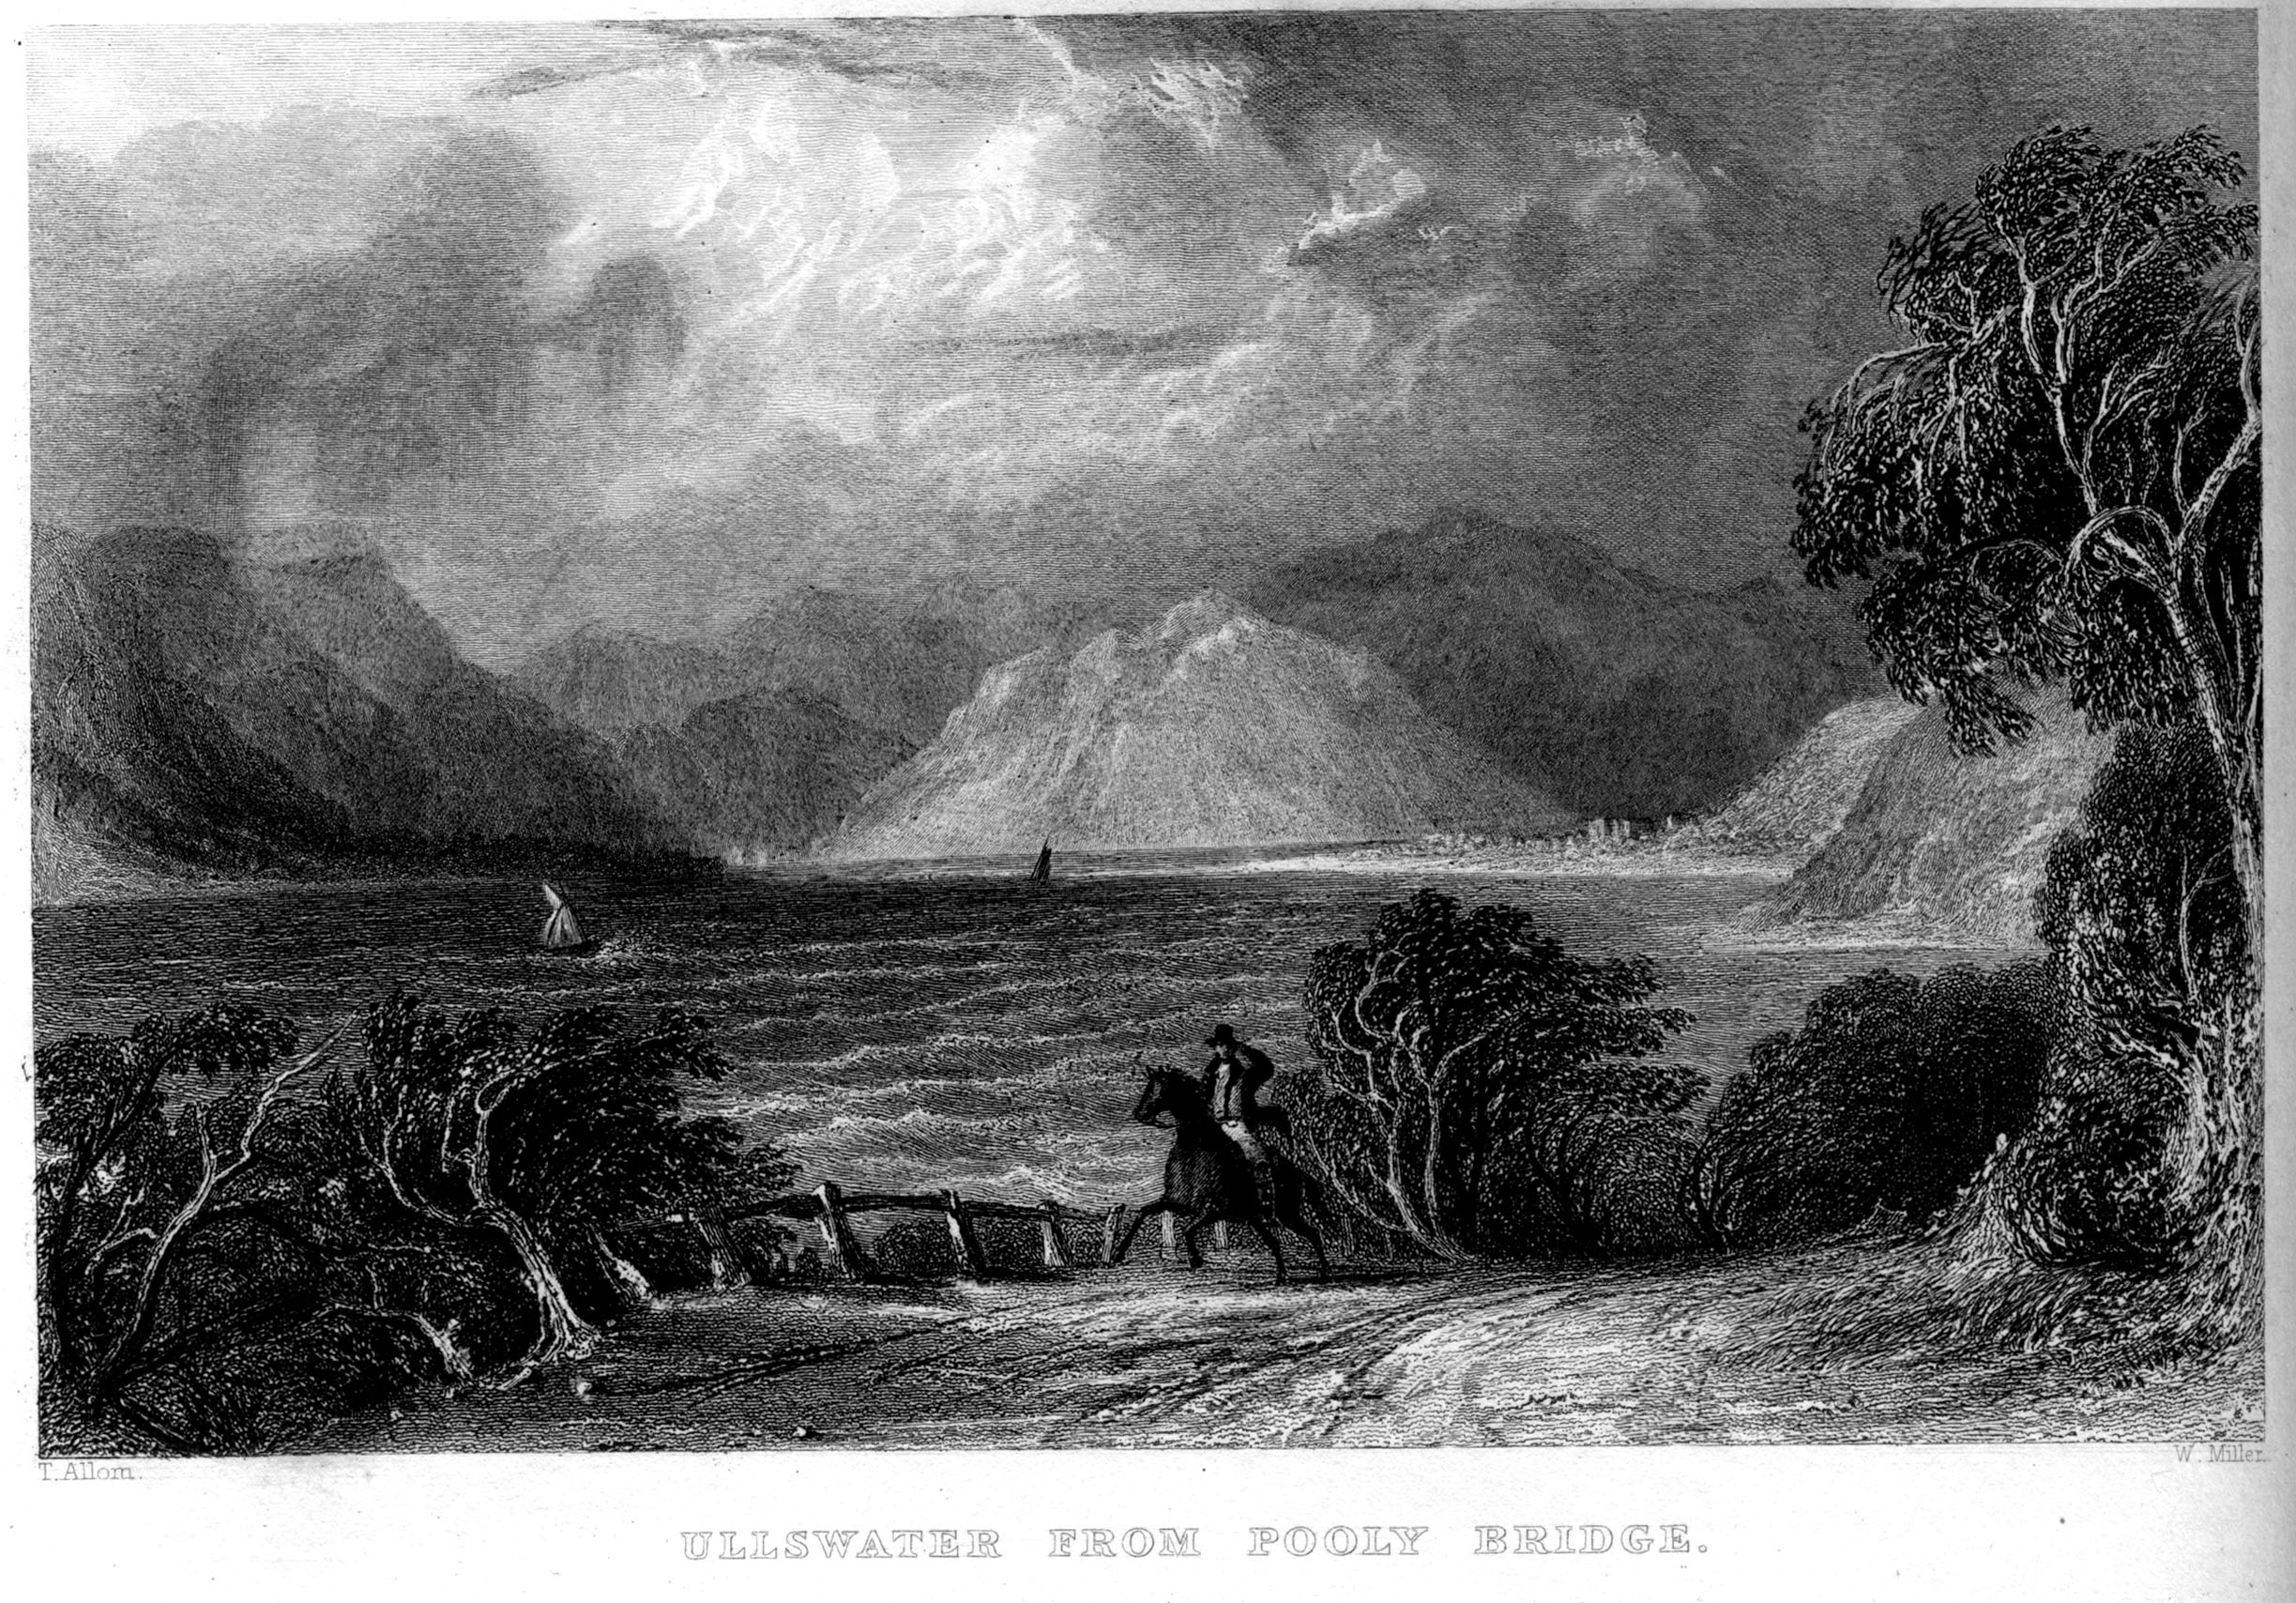 http://upload.wikimedia.org/wikipedia/commons/d/d5/Ullswater_from_Pooly_Bridge_engraving_by_William_Miller_after_T_Allom.jpg